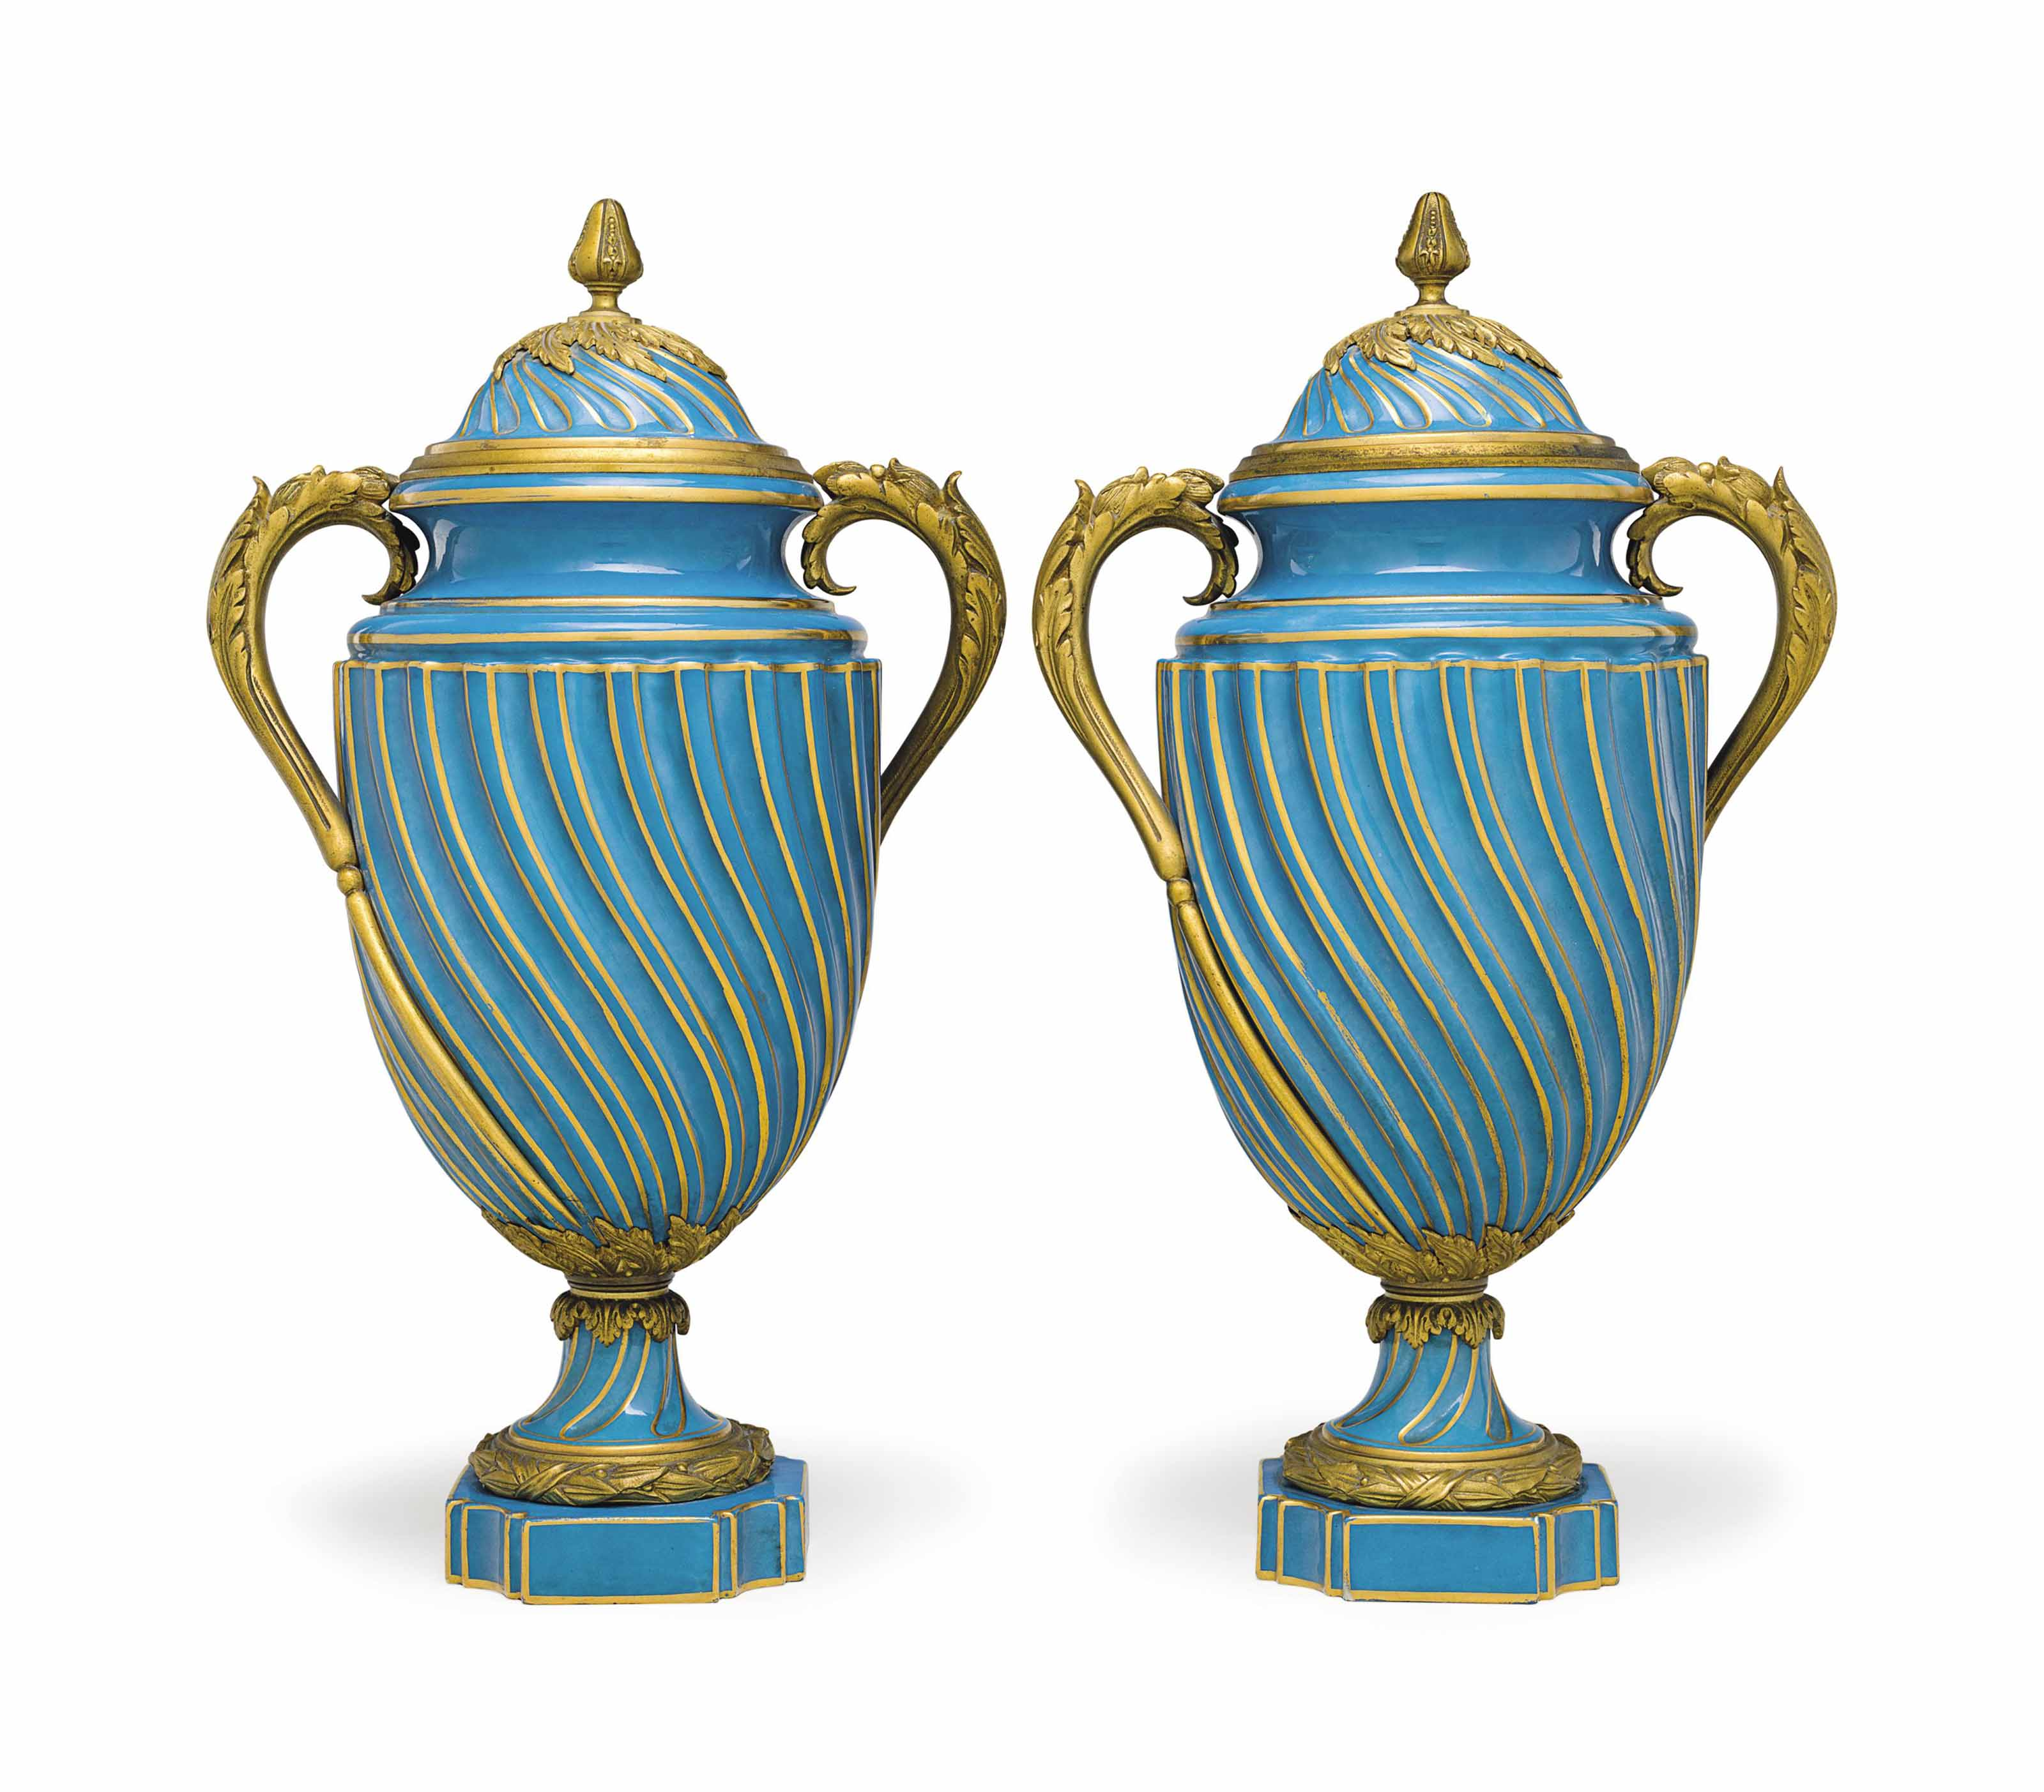 A PAIR OF ORMOLU-MOUNTED SEVRES STYLE PORCELAIN VASES AND